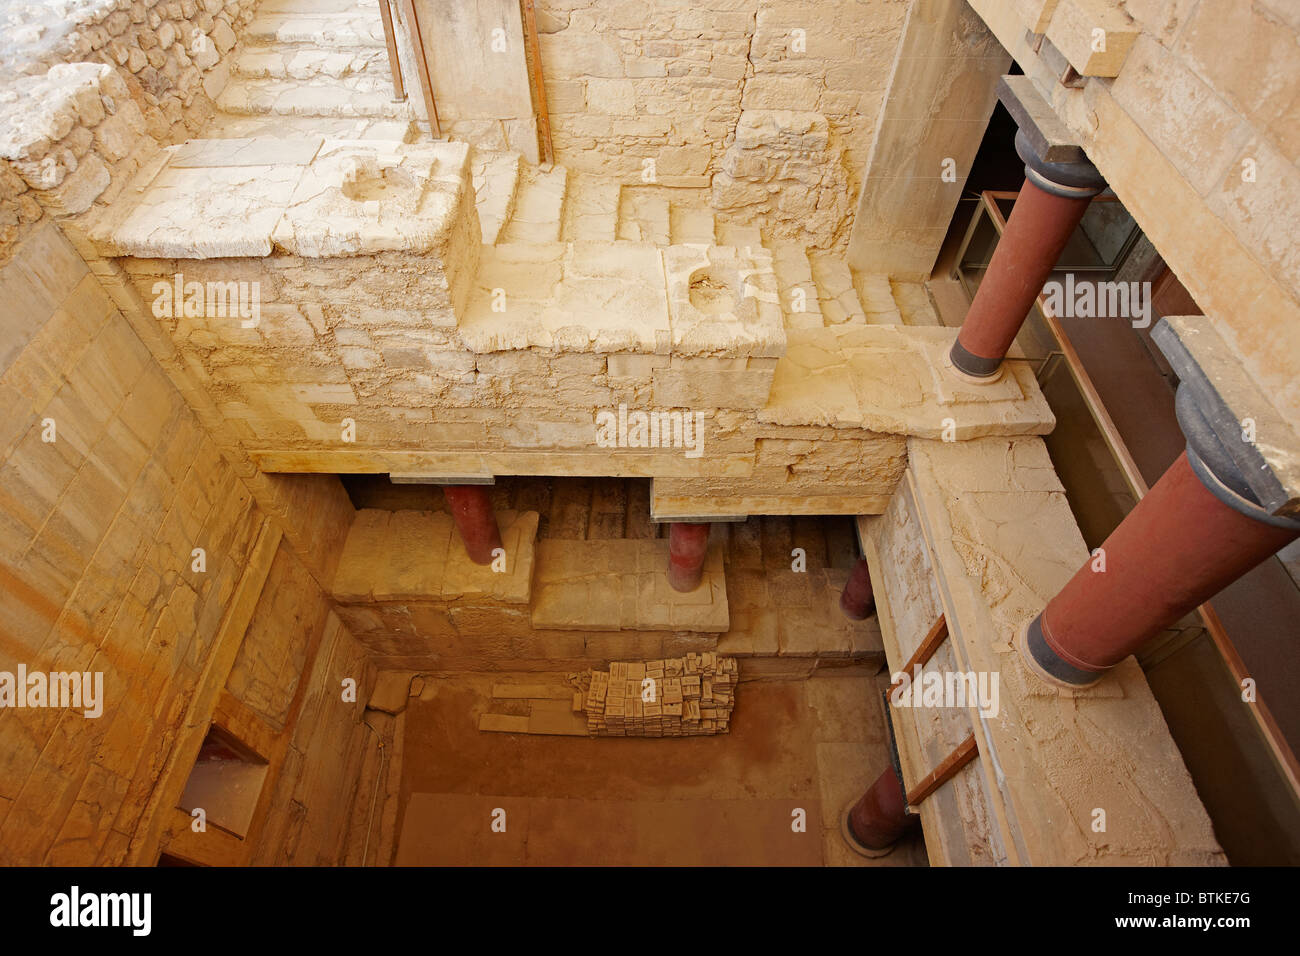 View From Above Of The Grand Staircase In Knossos Palace Crete